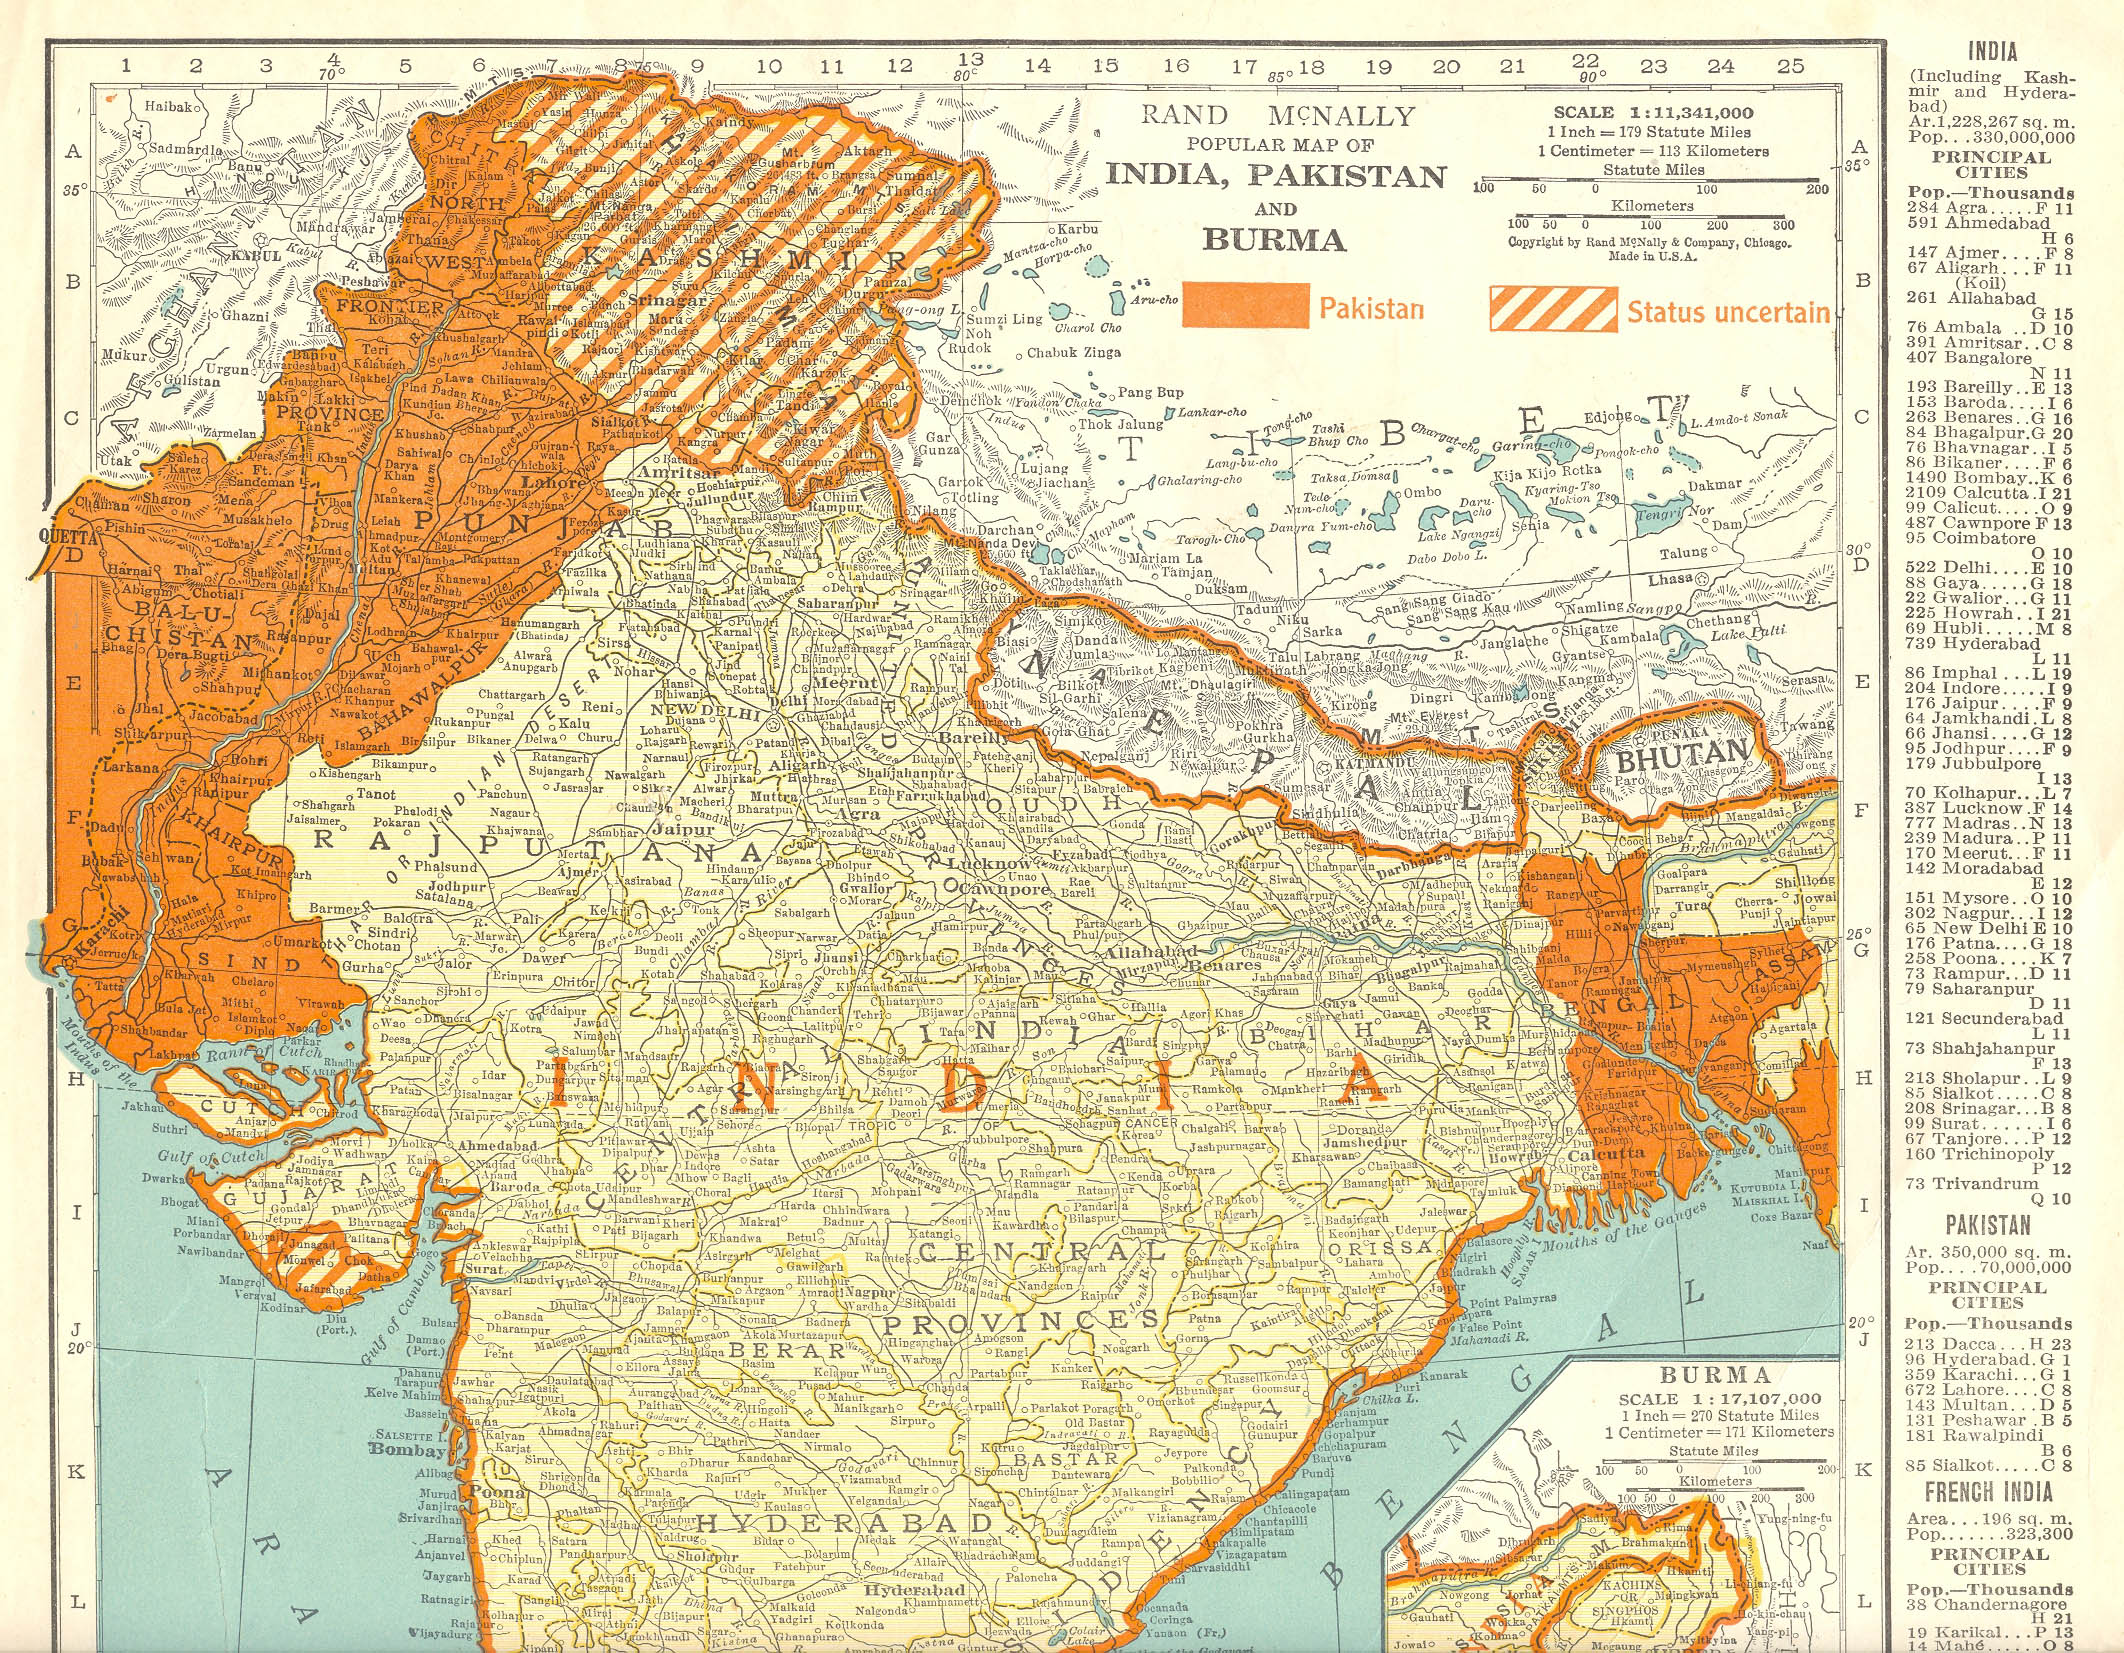 1947 map of india and pakistan relationship